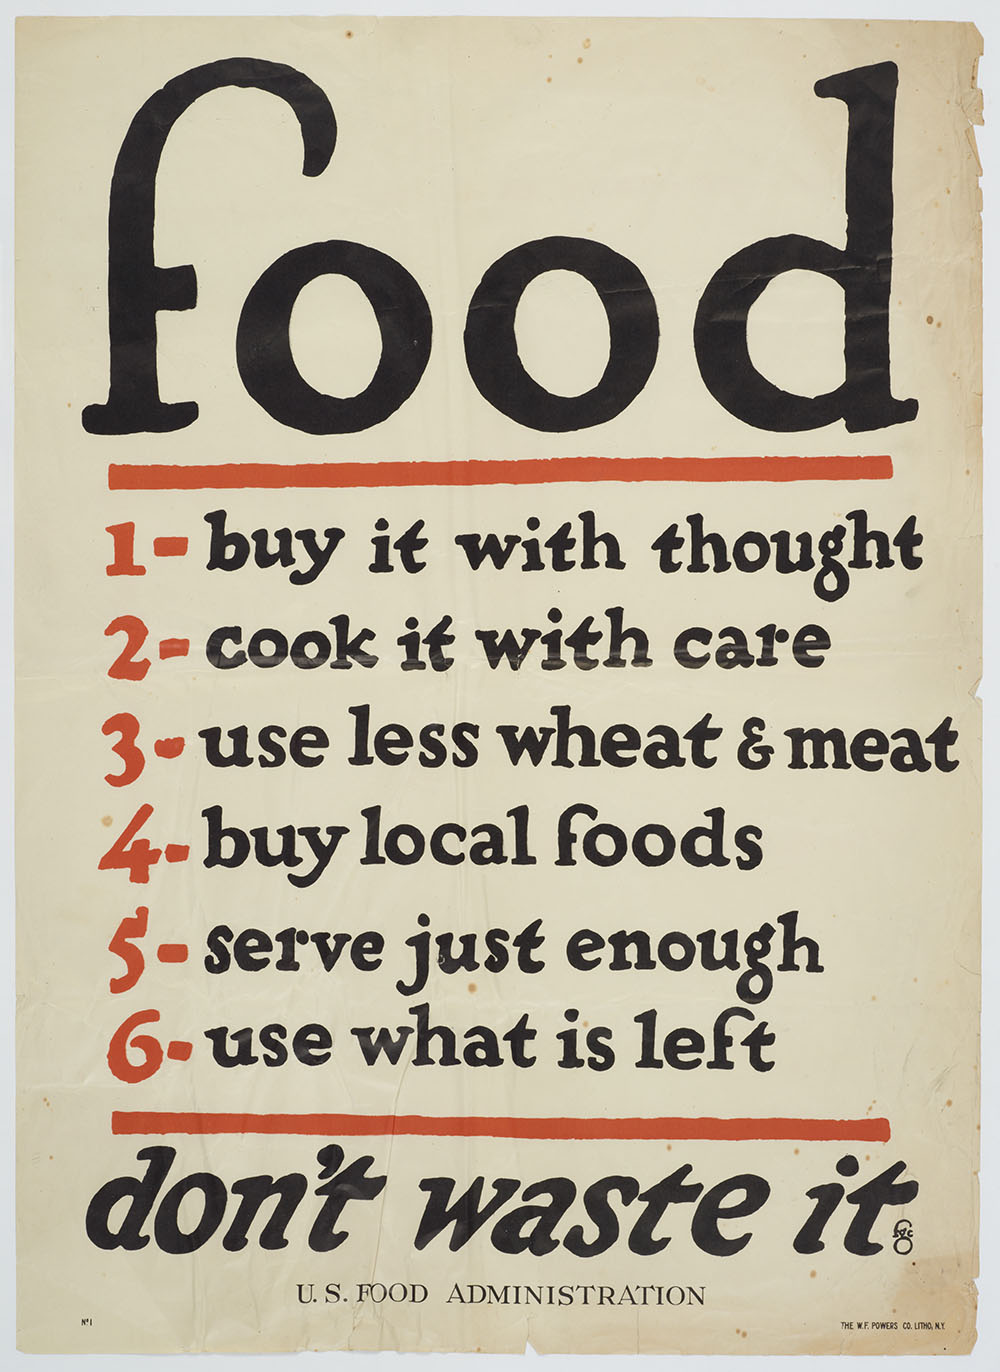 Poster with the words 'Food, 1, buy it with thought, 2, cook it with care, 3, use less wheat and meat, 4, buy local foods, 5, serve just enough, 6, use what is left, don't waste it